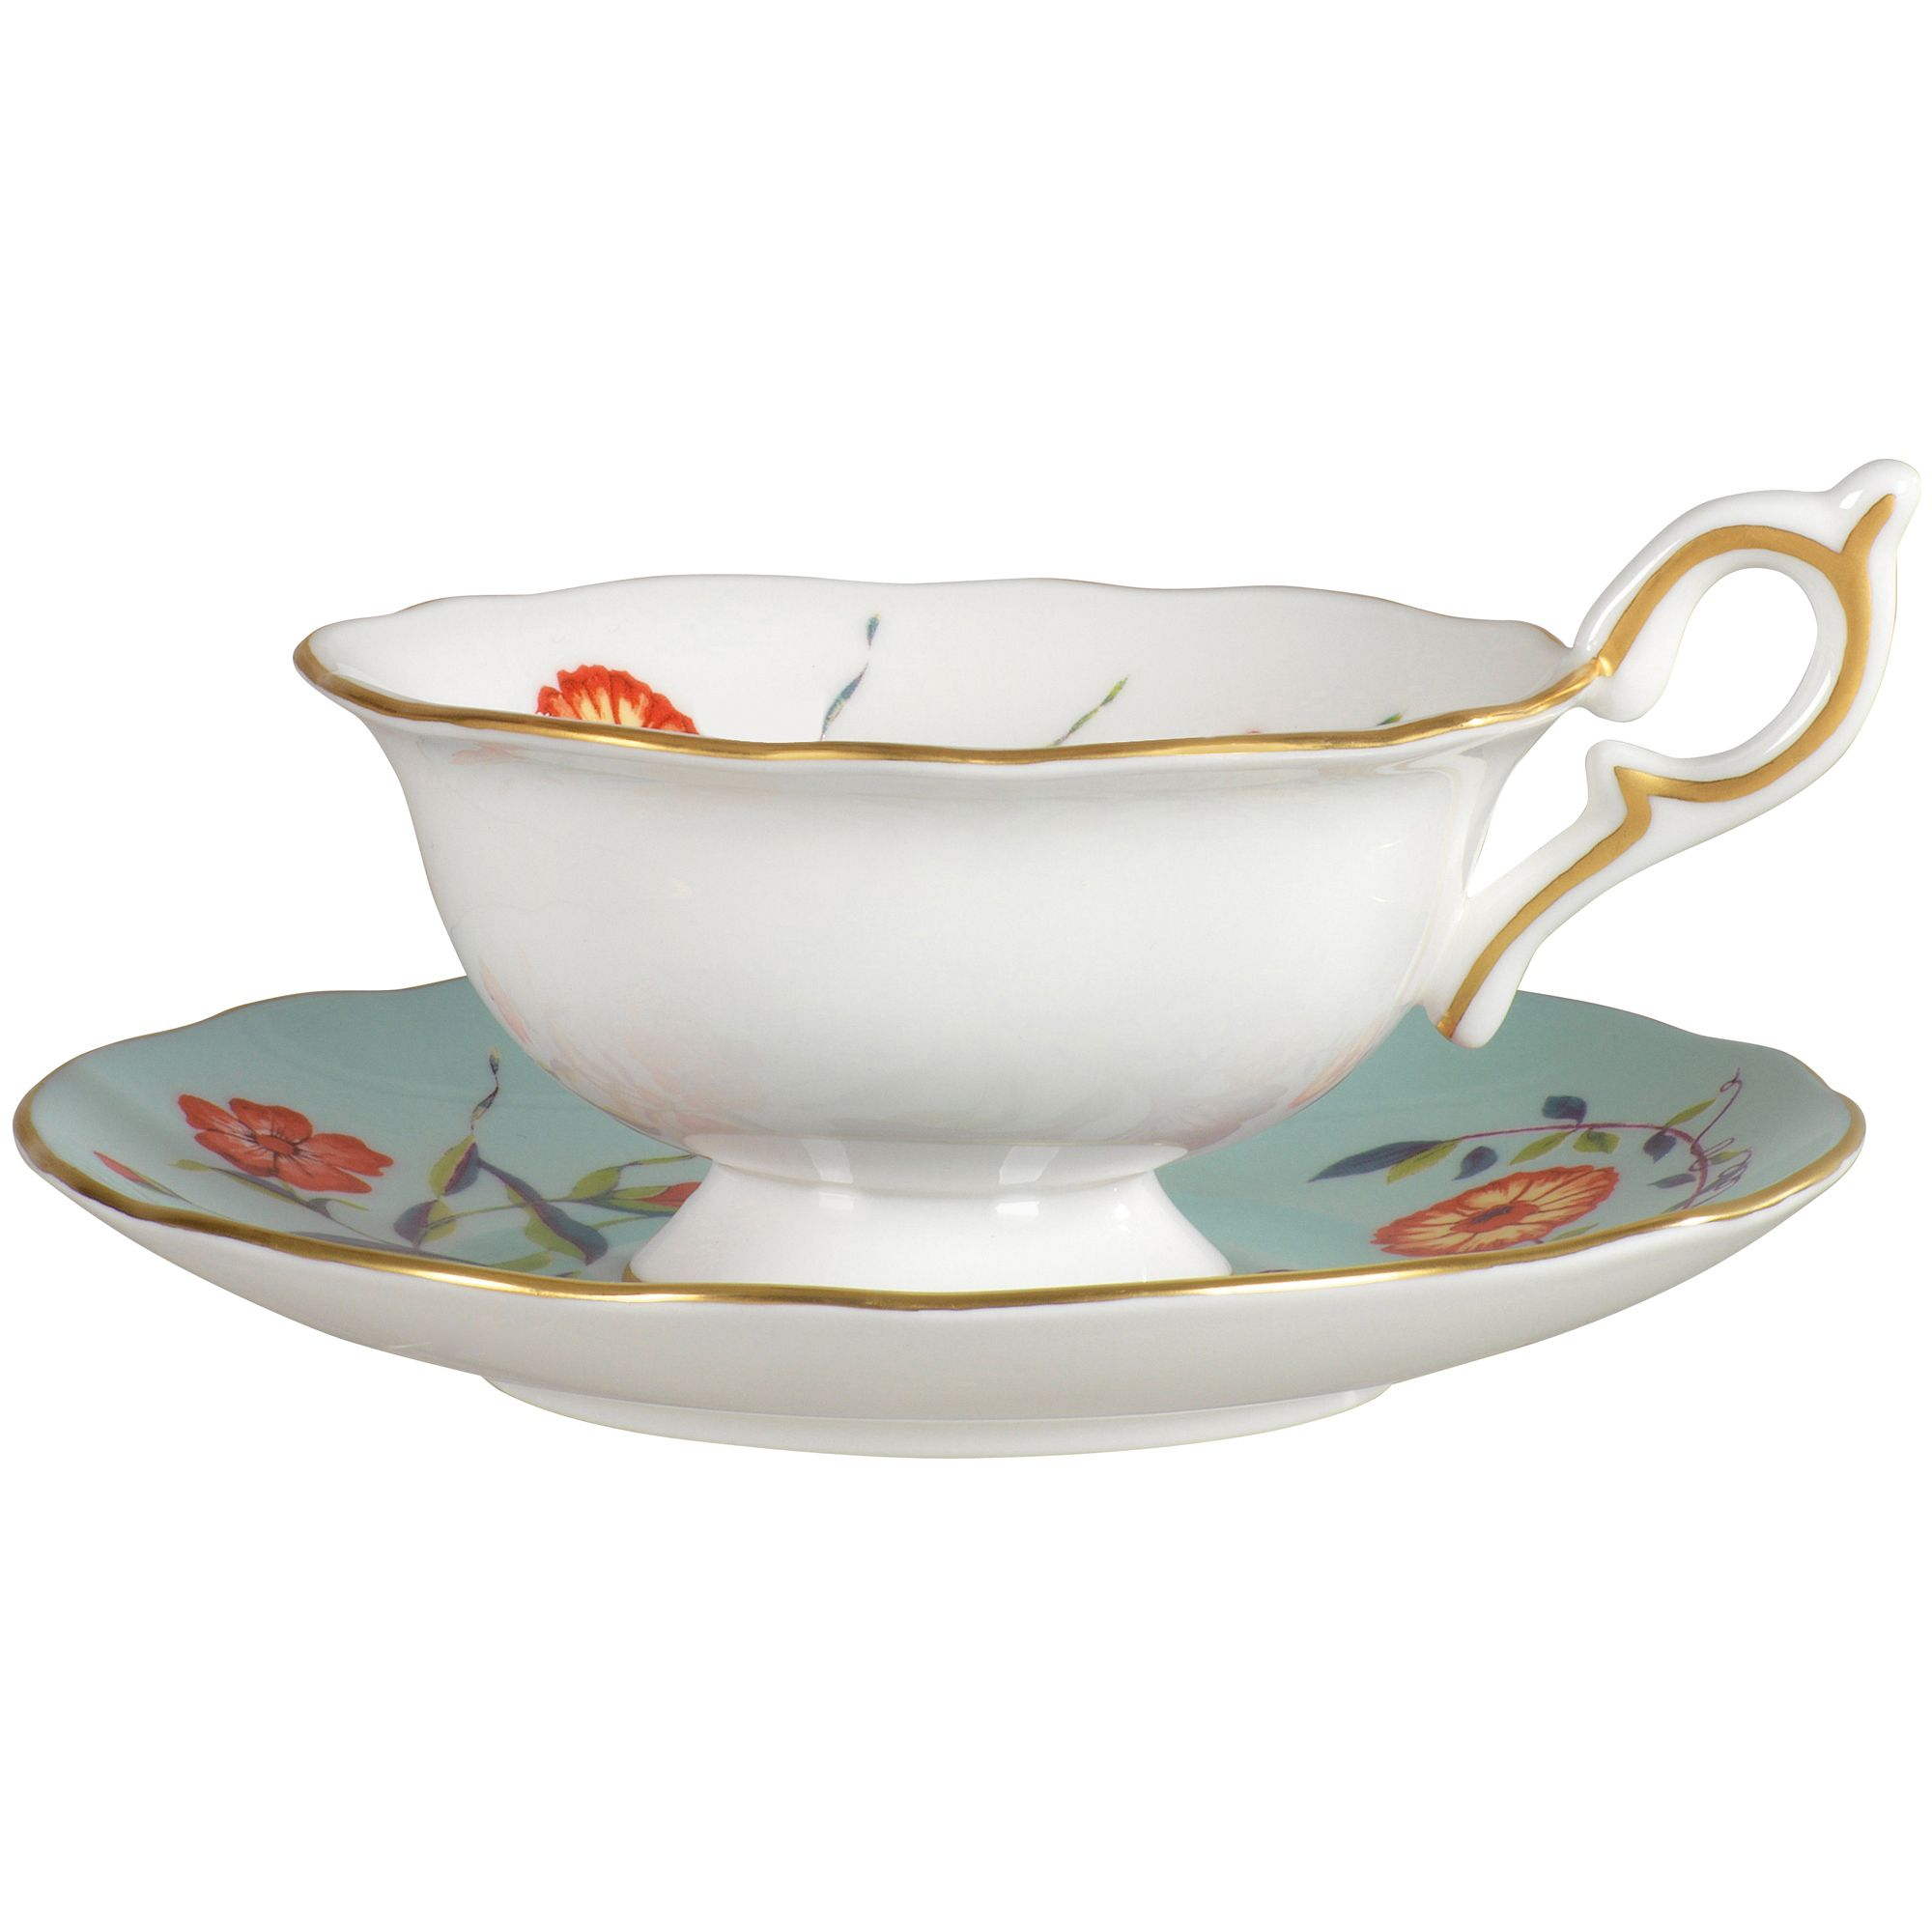 Turquoise crocus teacup and saucer